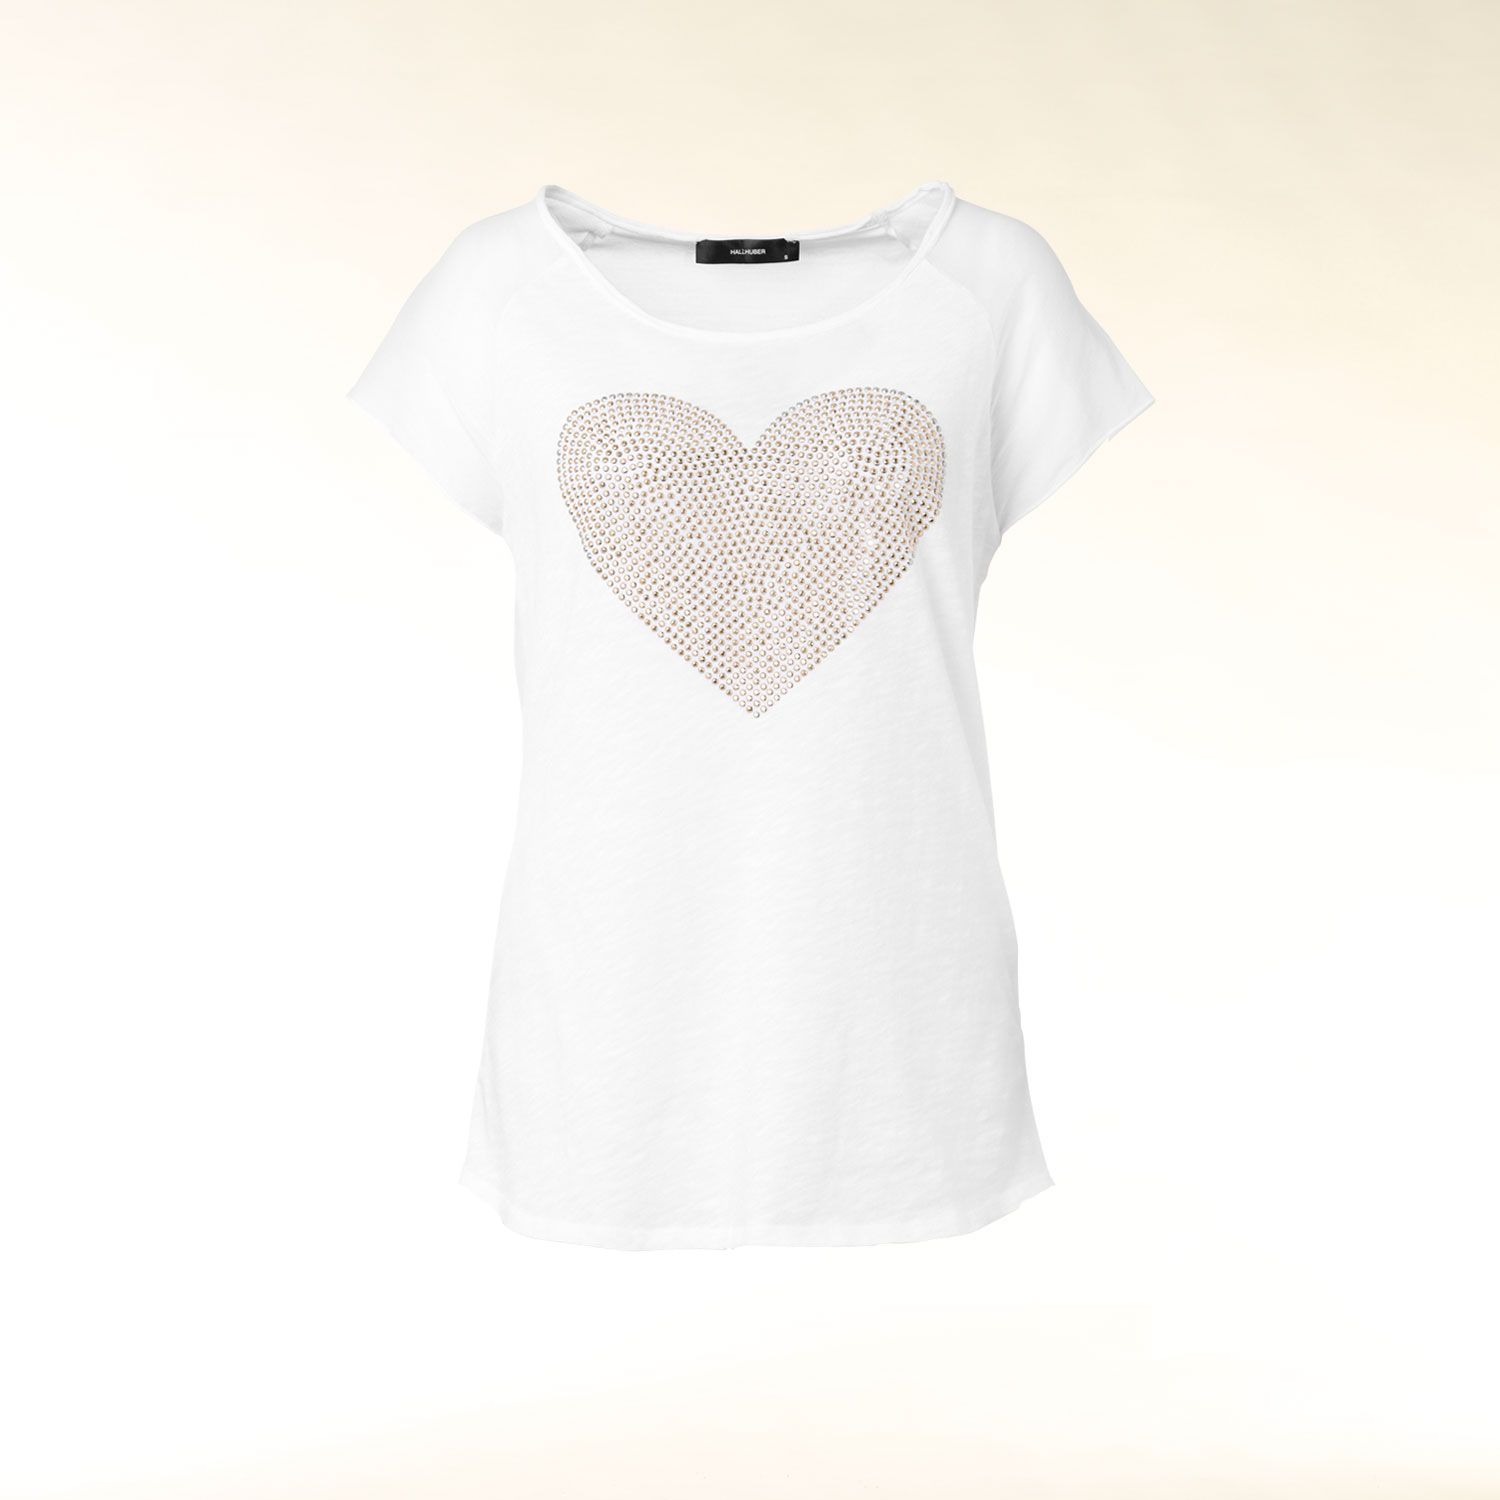 T-Shirt with heart applique